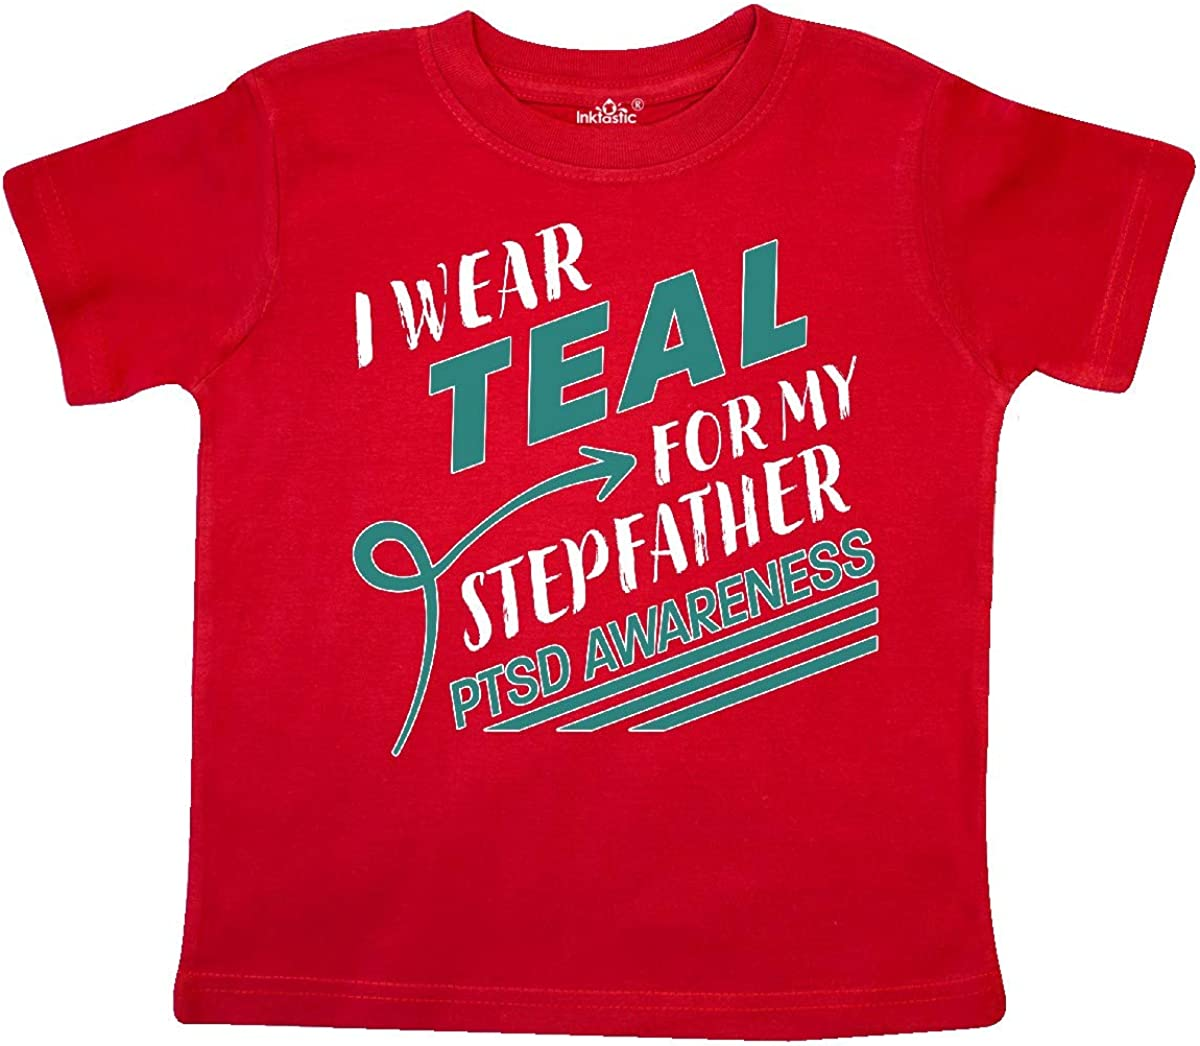 inktastic I Wear Teal for My Stepfather PTSD Awareness Toddler T-Shirt